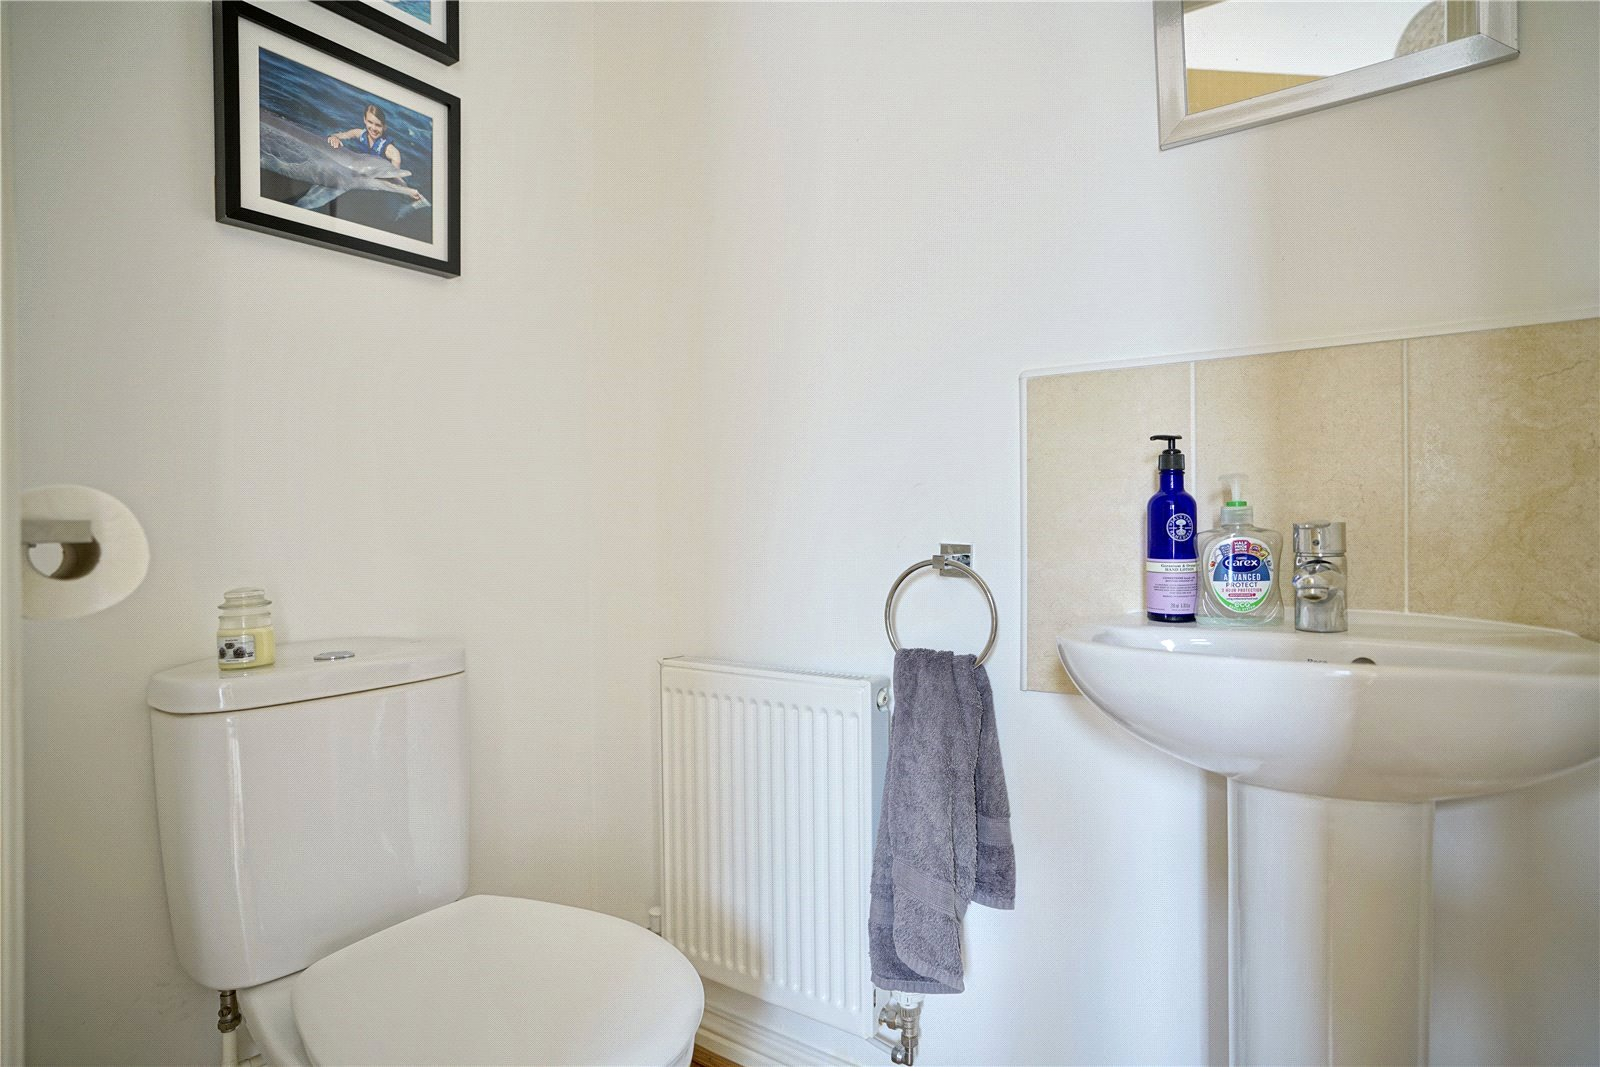 3 bed house for sale in St. Ives, PE27 5DL  - Property Image 12